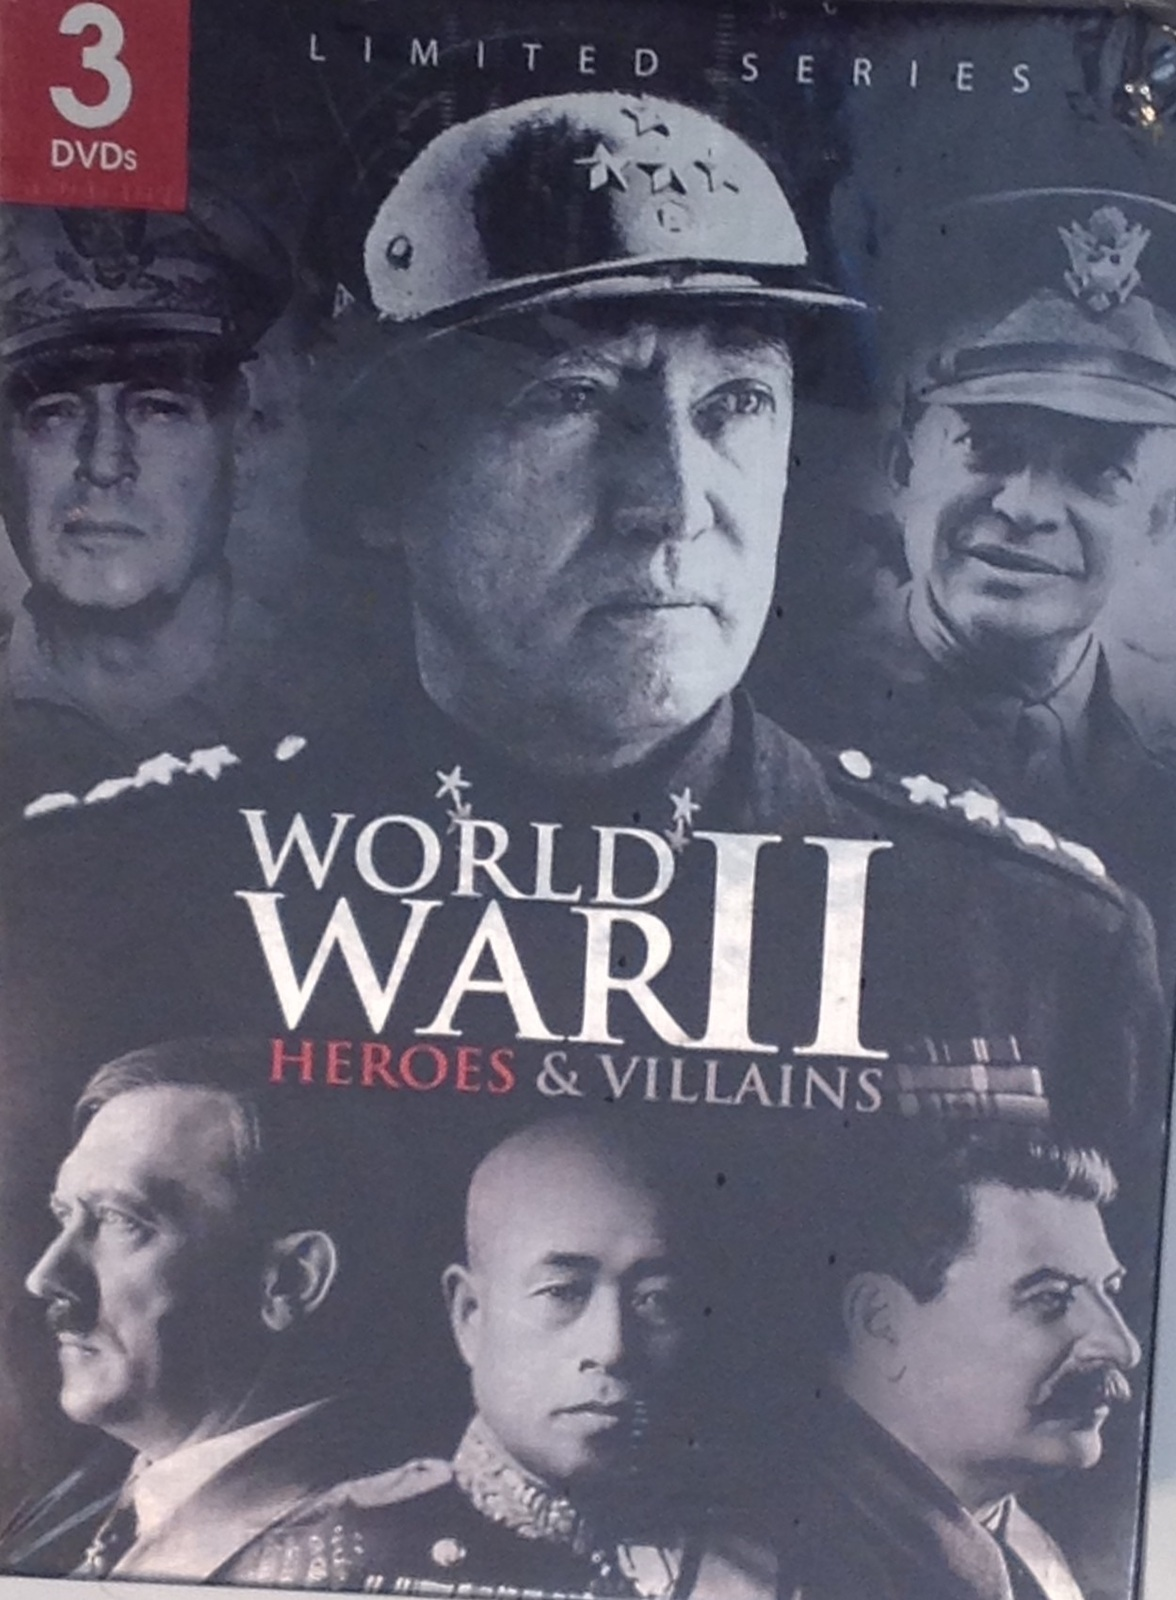 Primary image for World War II: Heroes & Villains DVD 3 Disc Set 2011